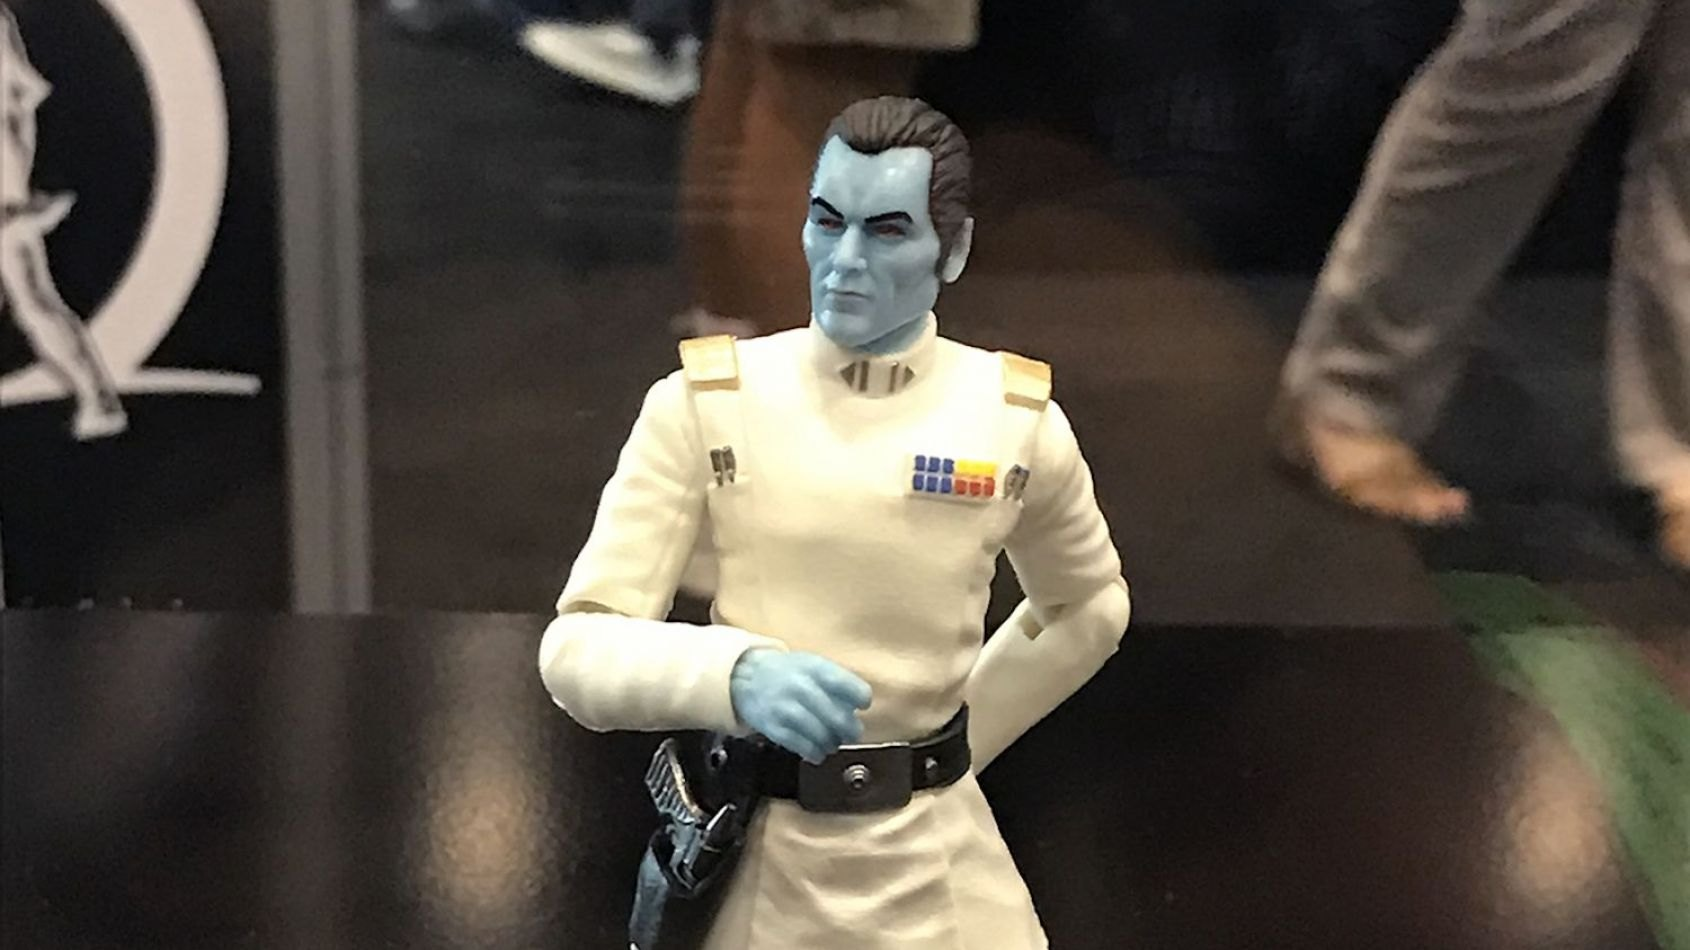 Celebration: Le Grand Amiral Thrawn par Hasbro